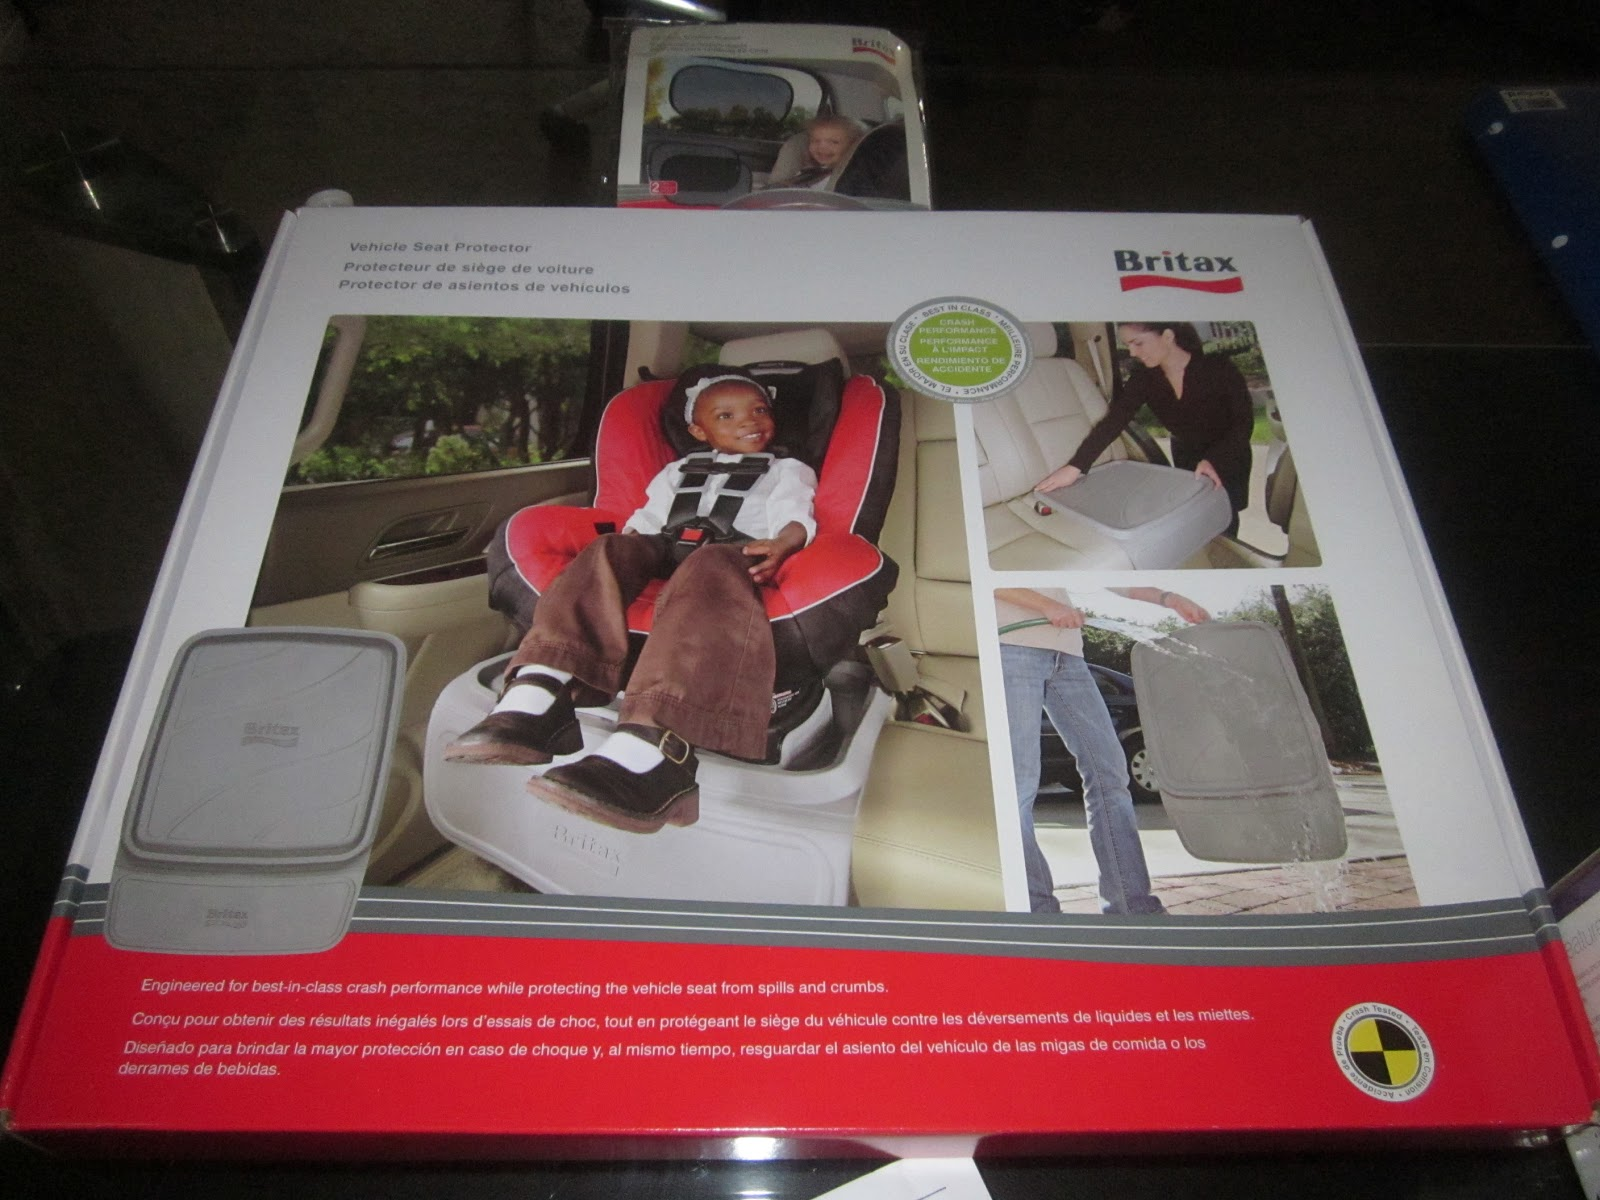 Britax Vehicle Seat Protector Review